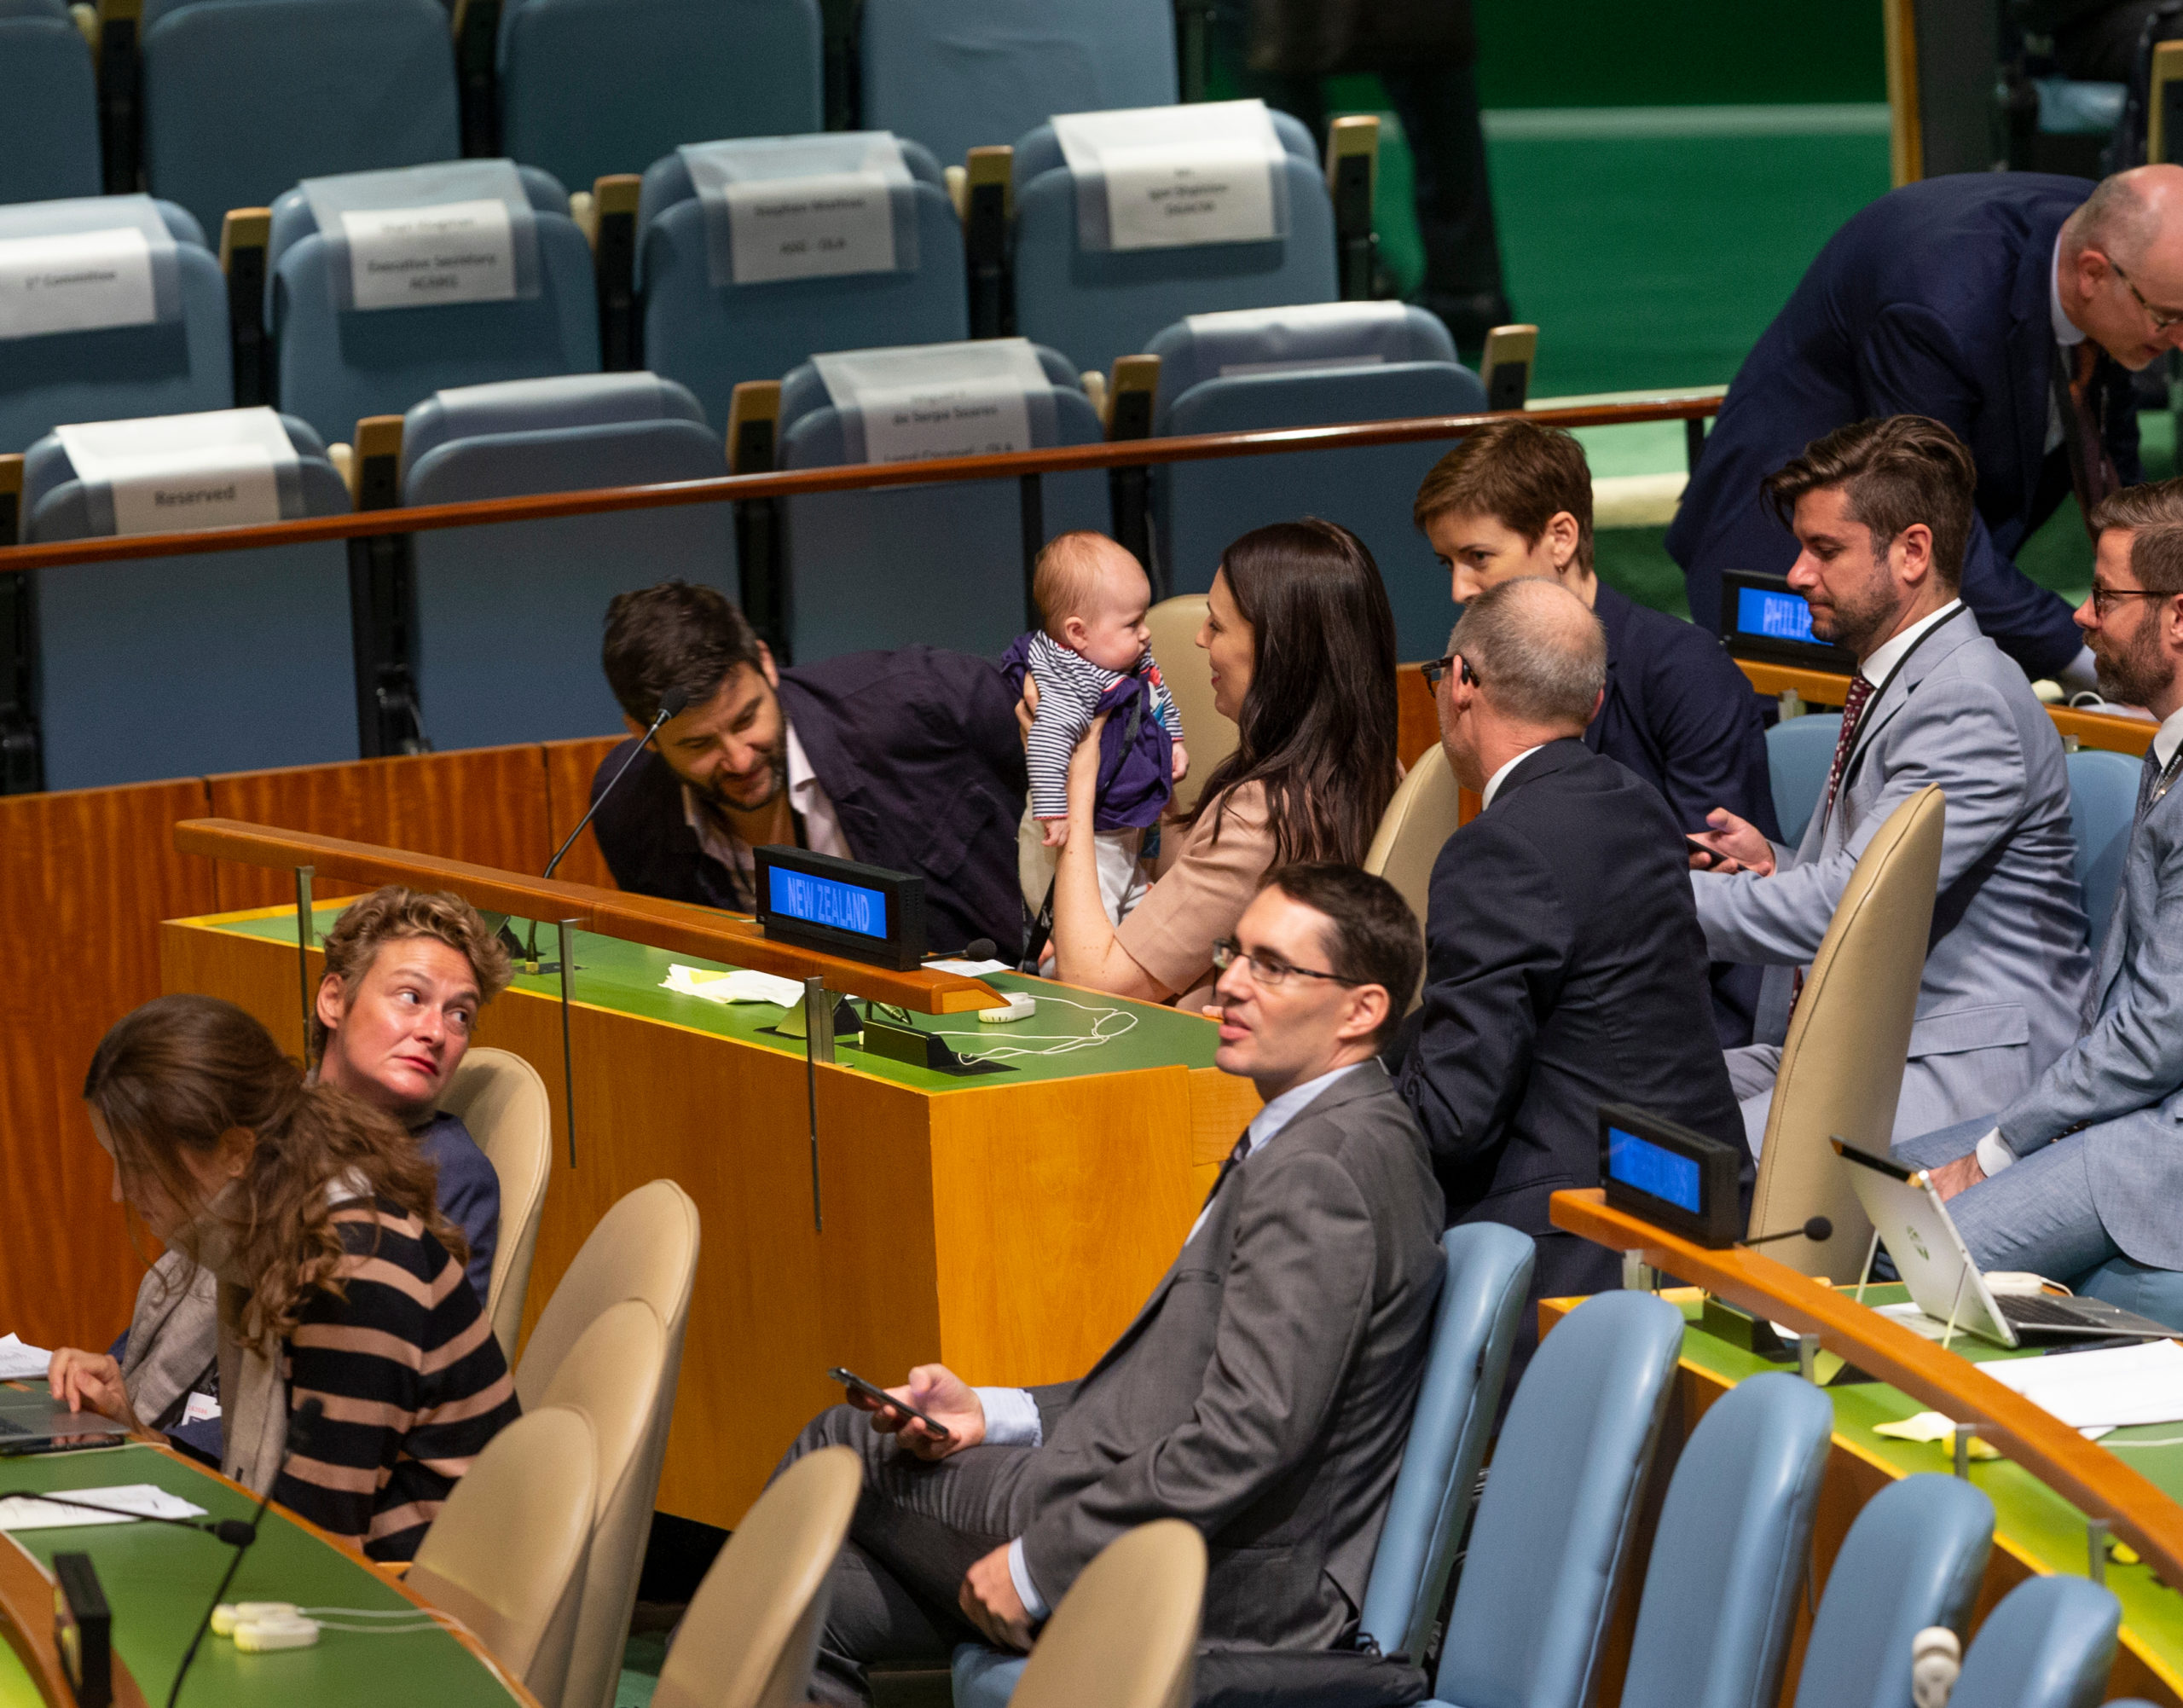 New Zealand stays together in a troubled world